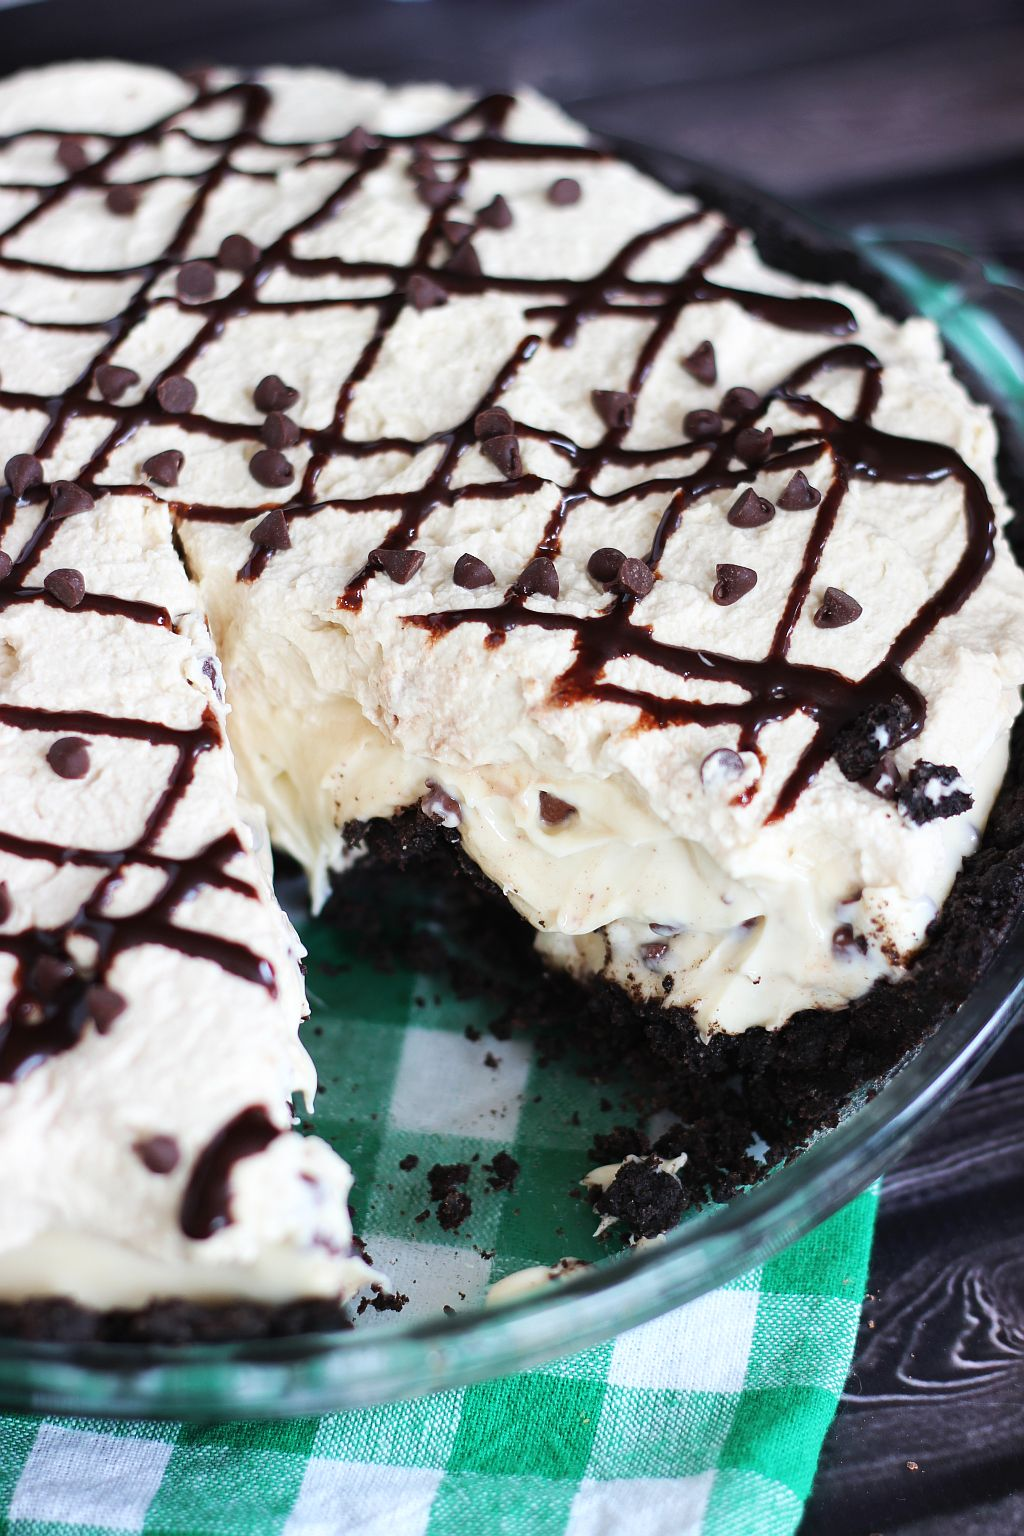 St. Patrick's Day Recipes Desserts Round-up!